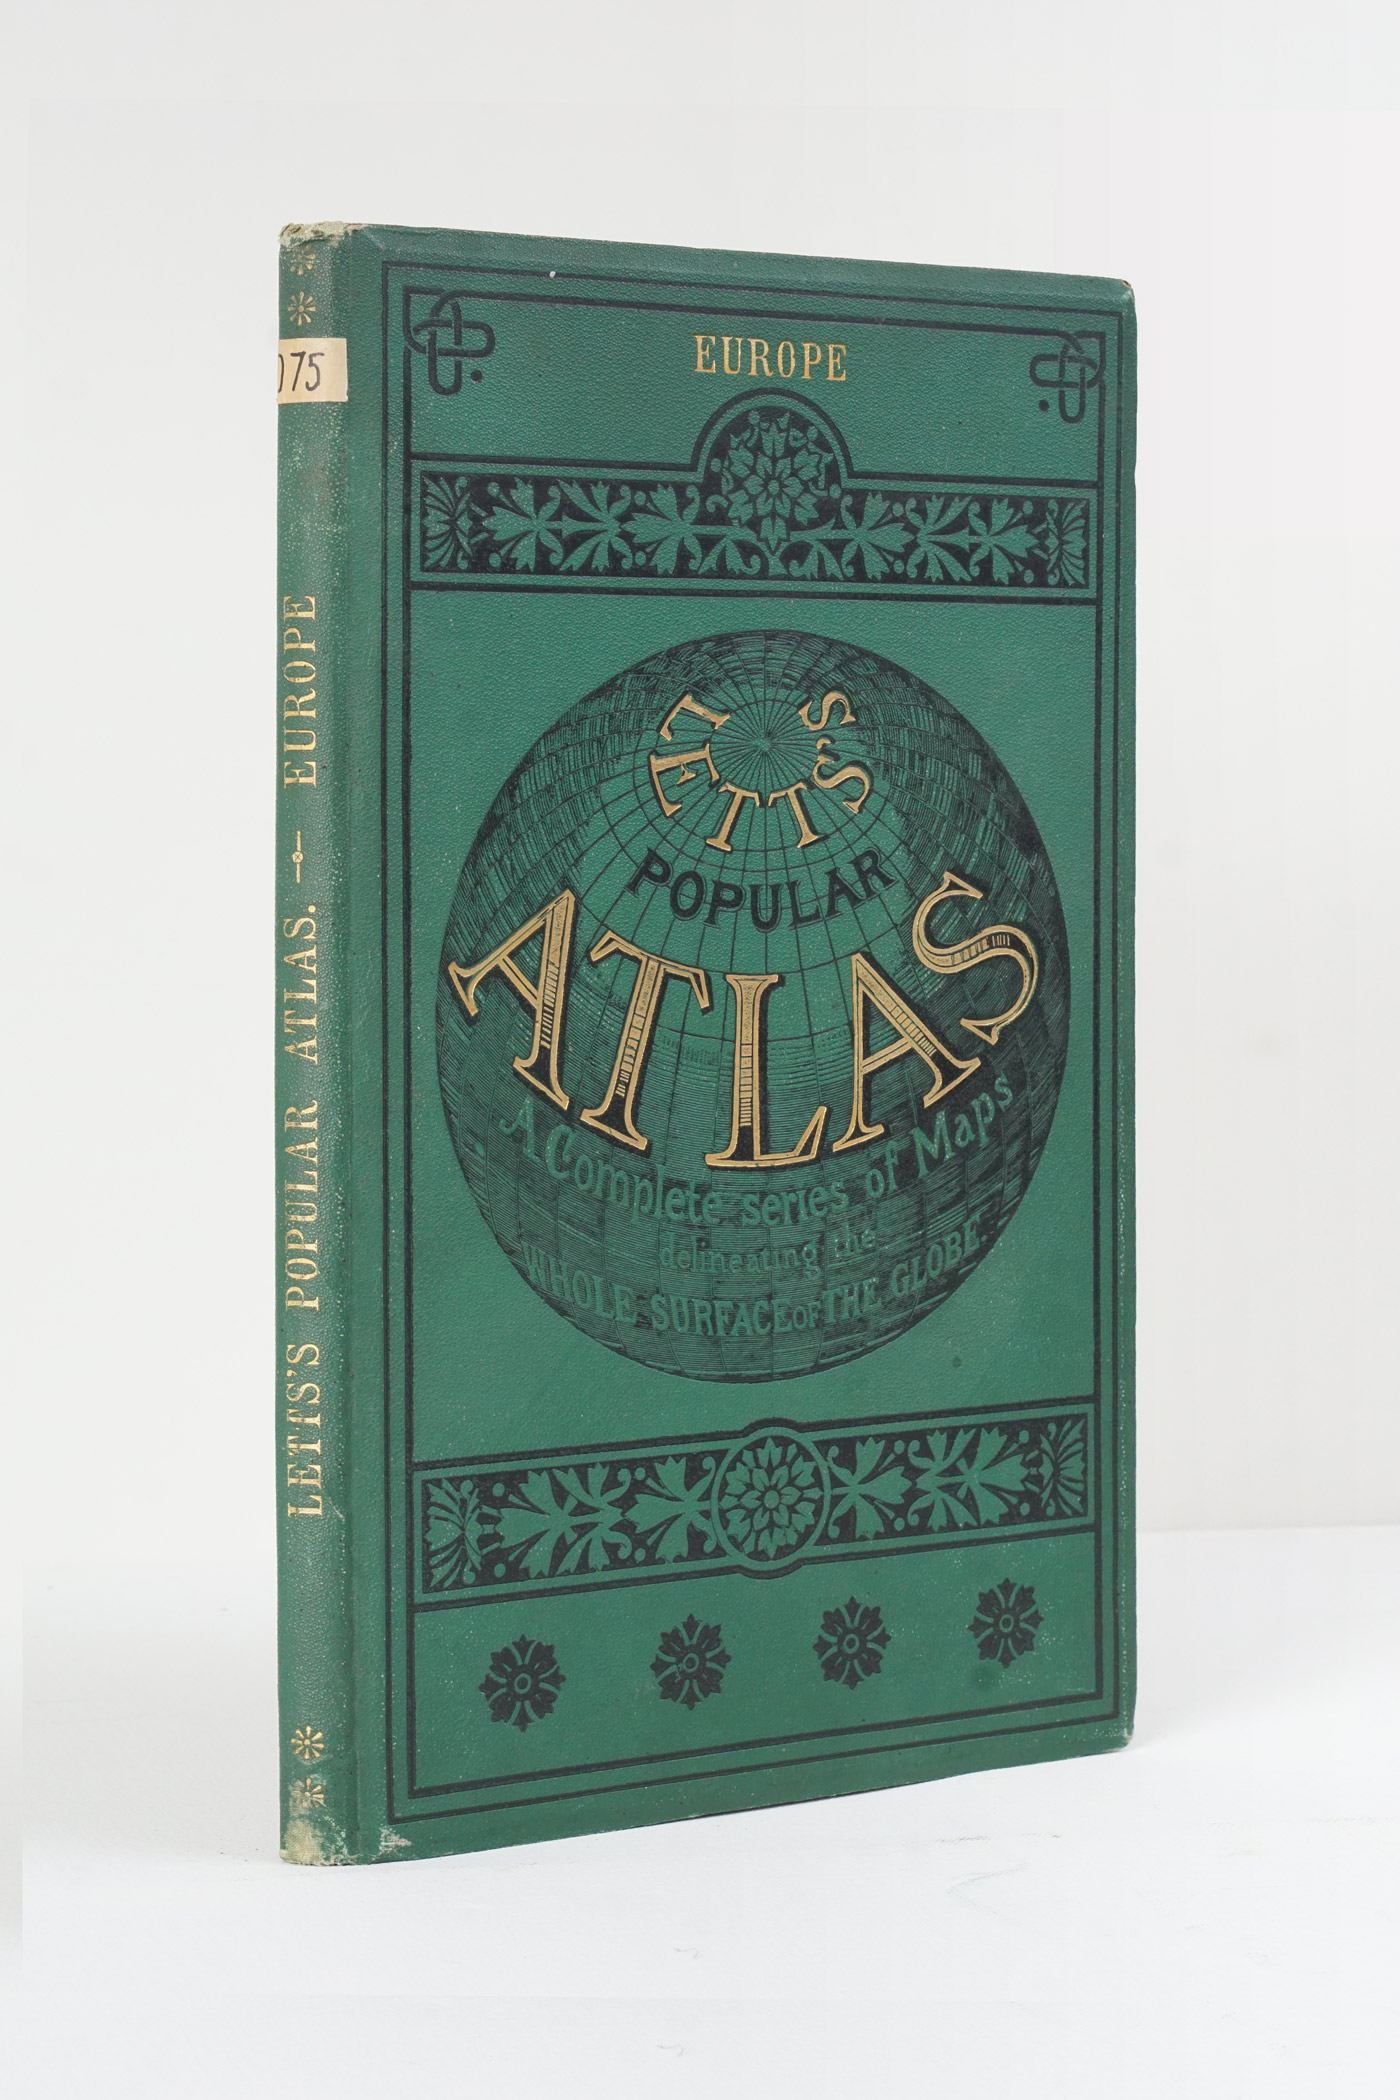 Letts's Popular Atlas - Europe